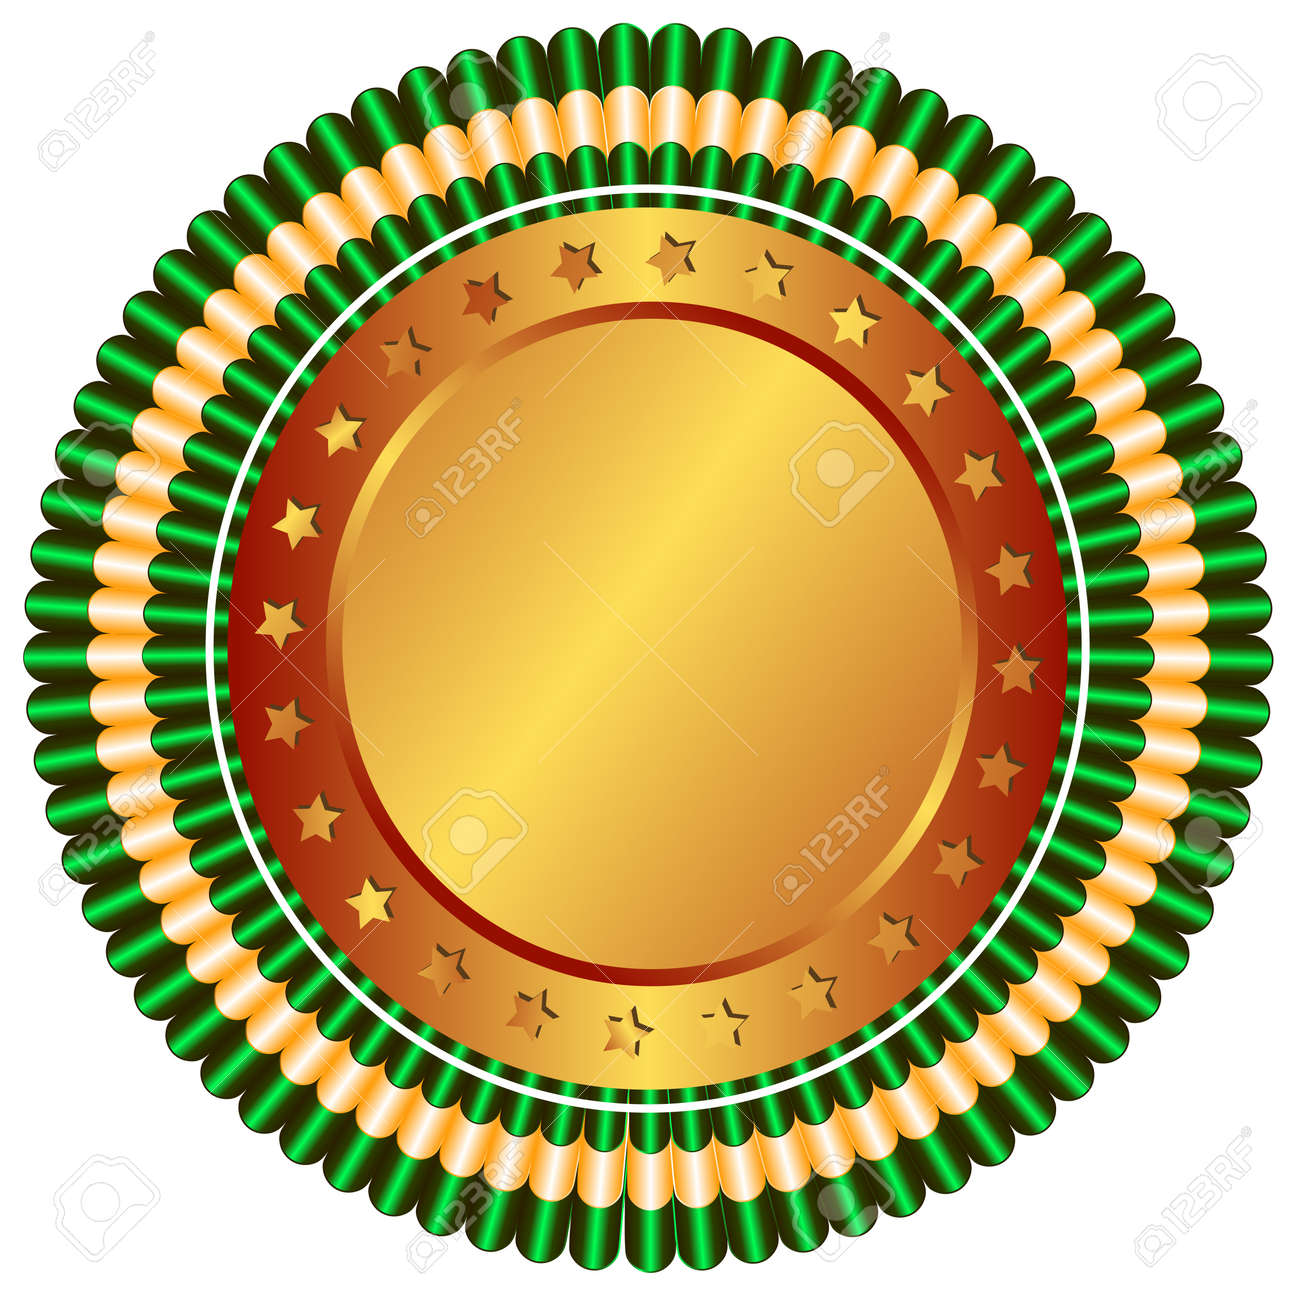 Big bronze medal with stars and green ribbons Stock Vector - 4862420